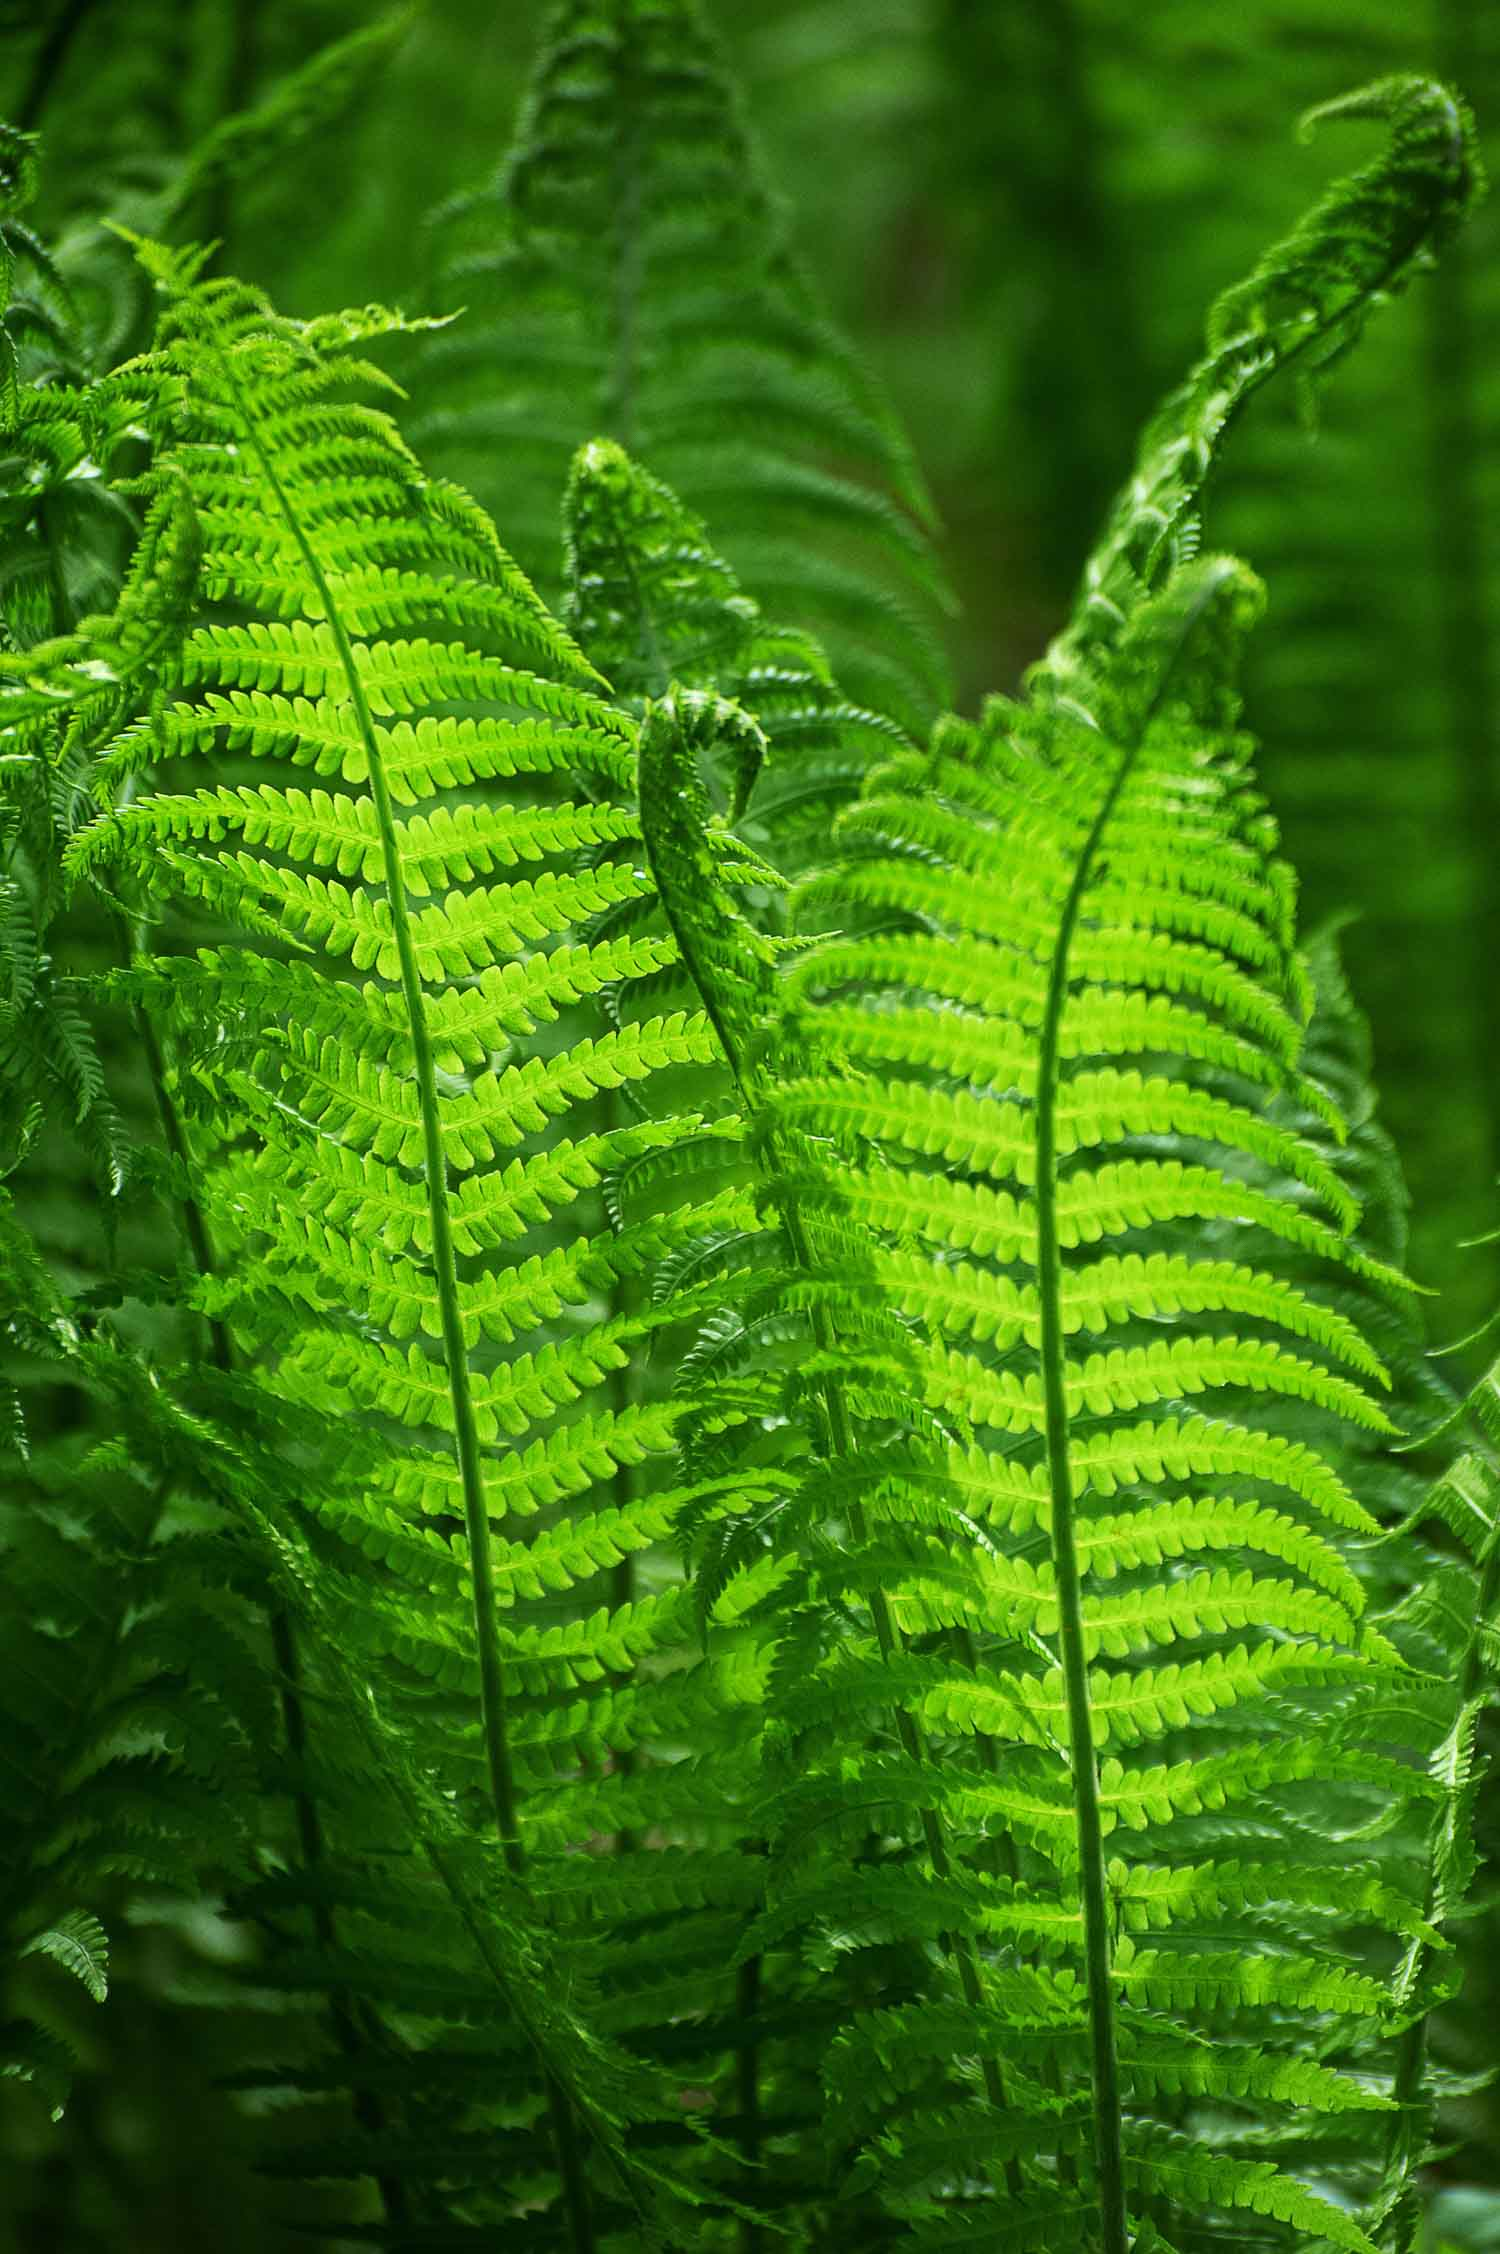 Green browses of fern leaves Matteuccia struthiopteris which are what fiddlehead ferns are known as